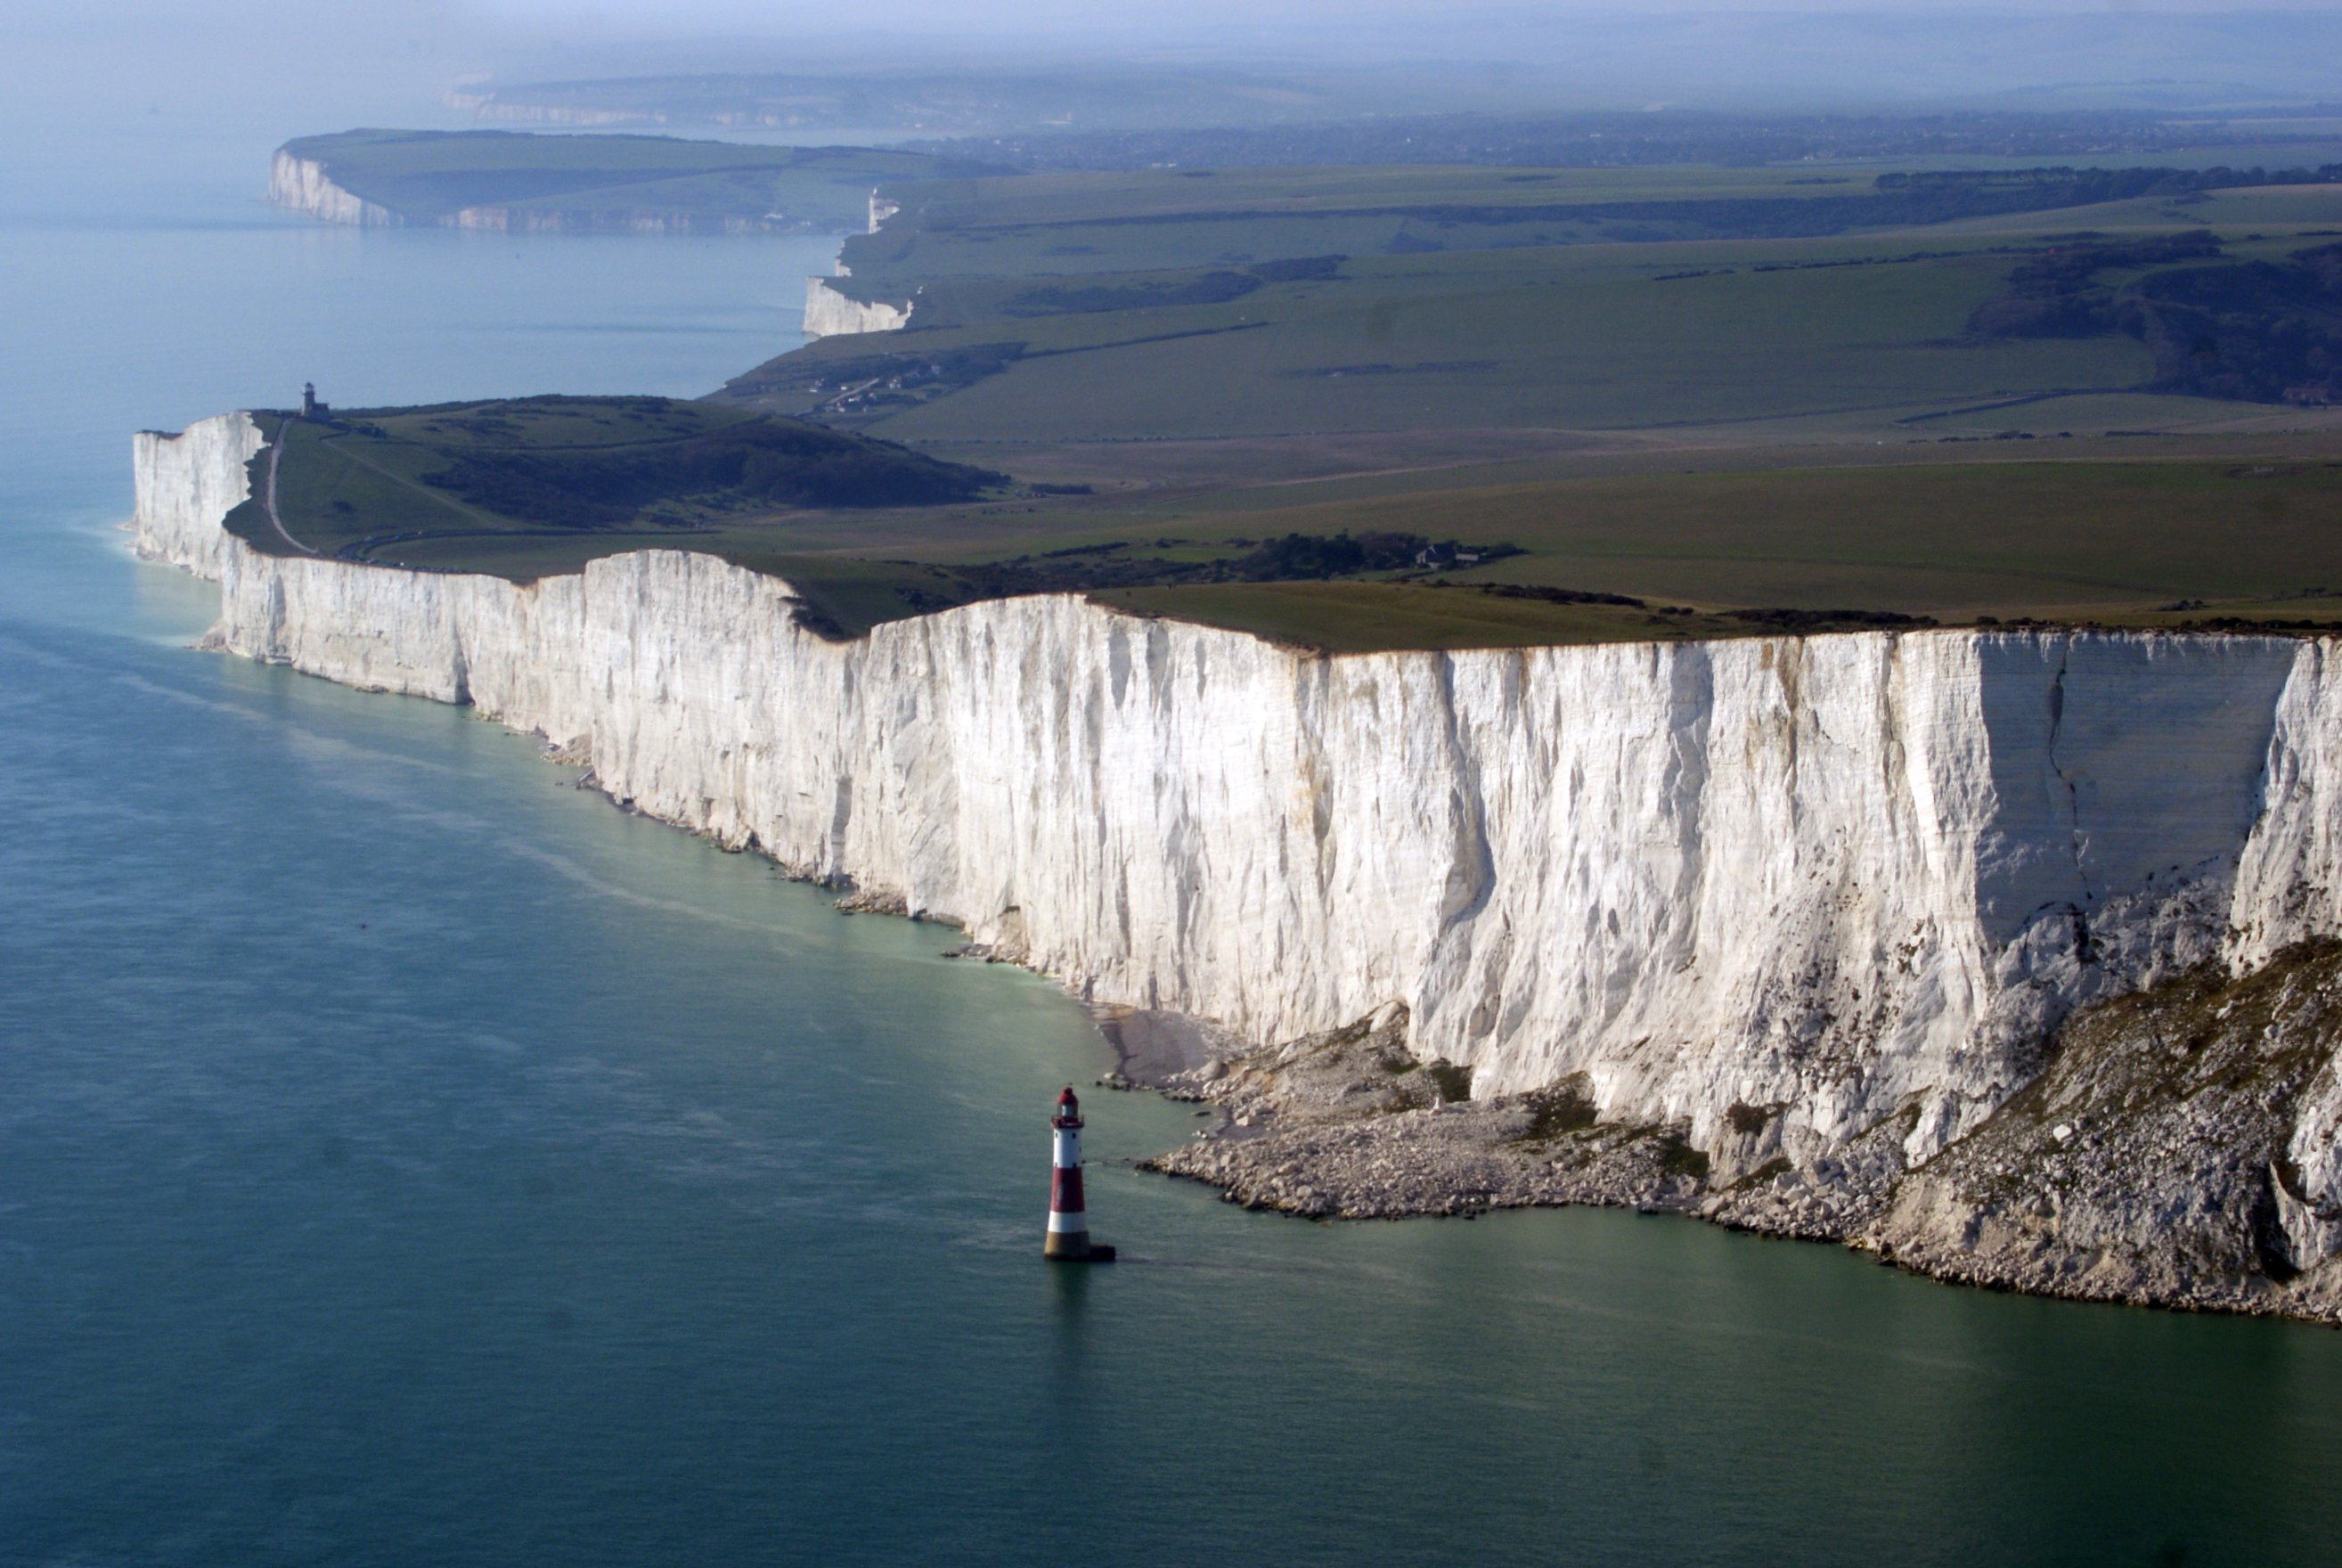 Beachy_Head, Inghilterra